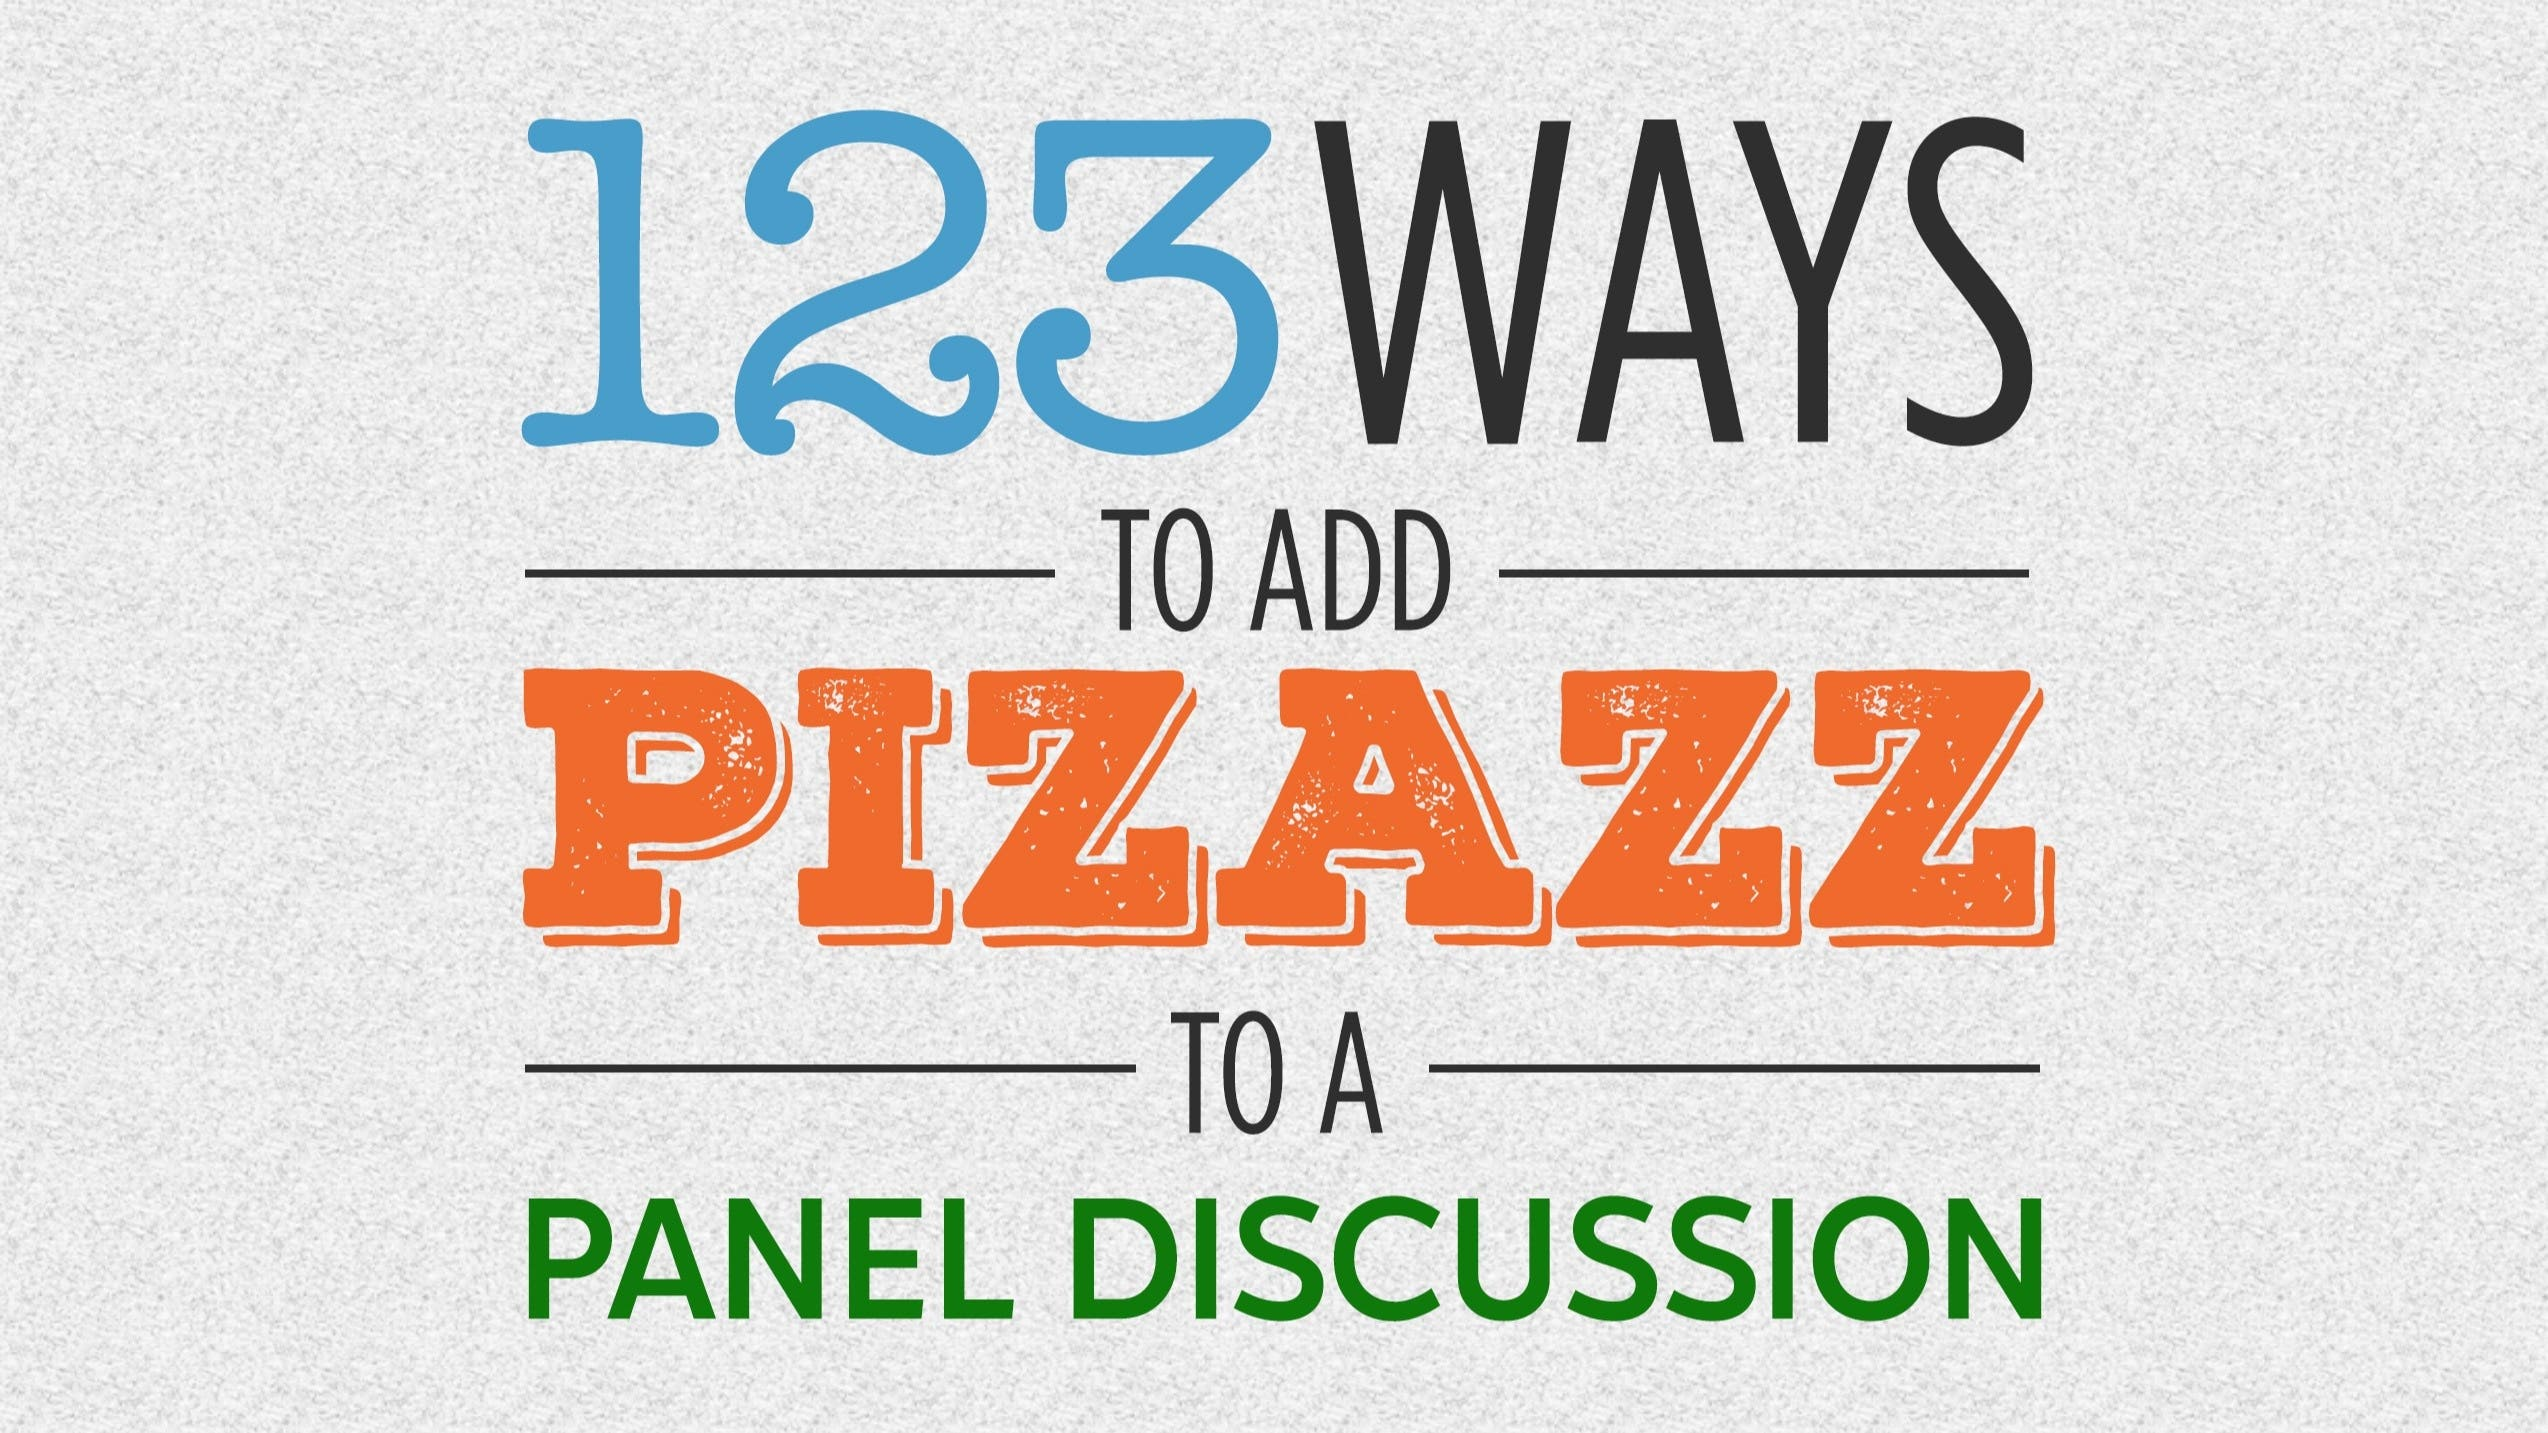 123 Ways to Add Pizazz to a Panel Discussion: Book